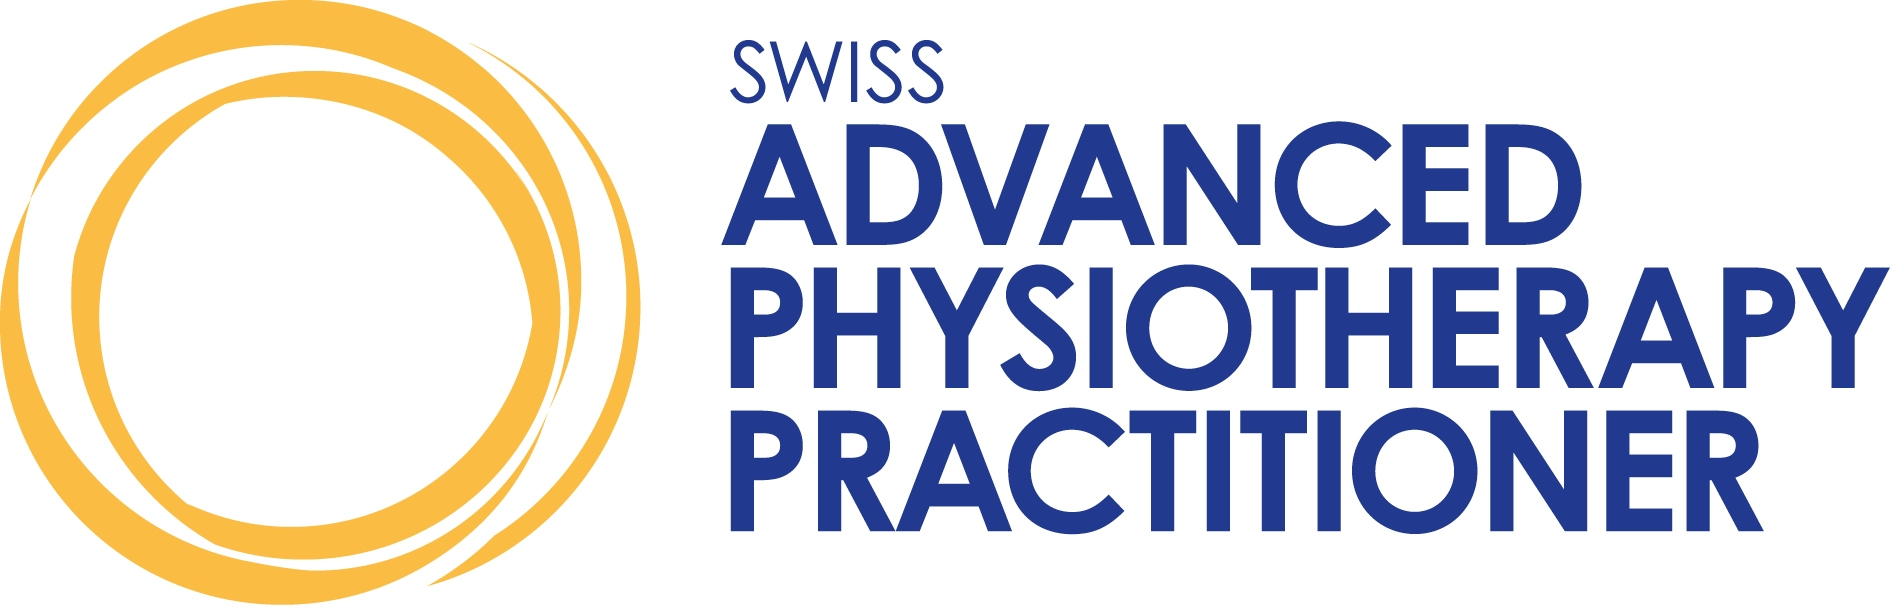 SWISS ADVANCED PHSYSIOTHERAPY PRACTITIONER